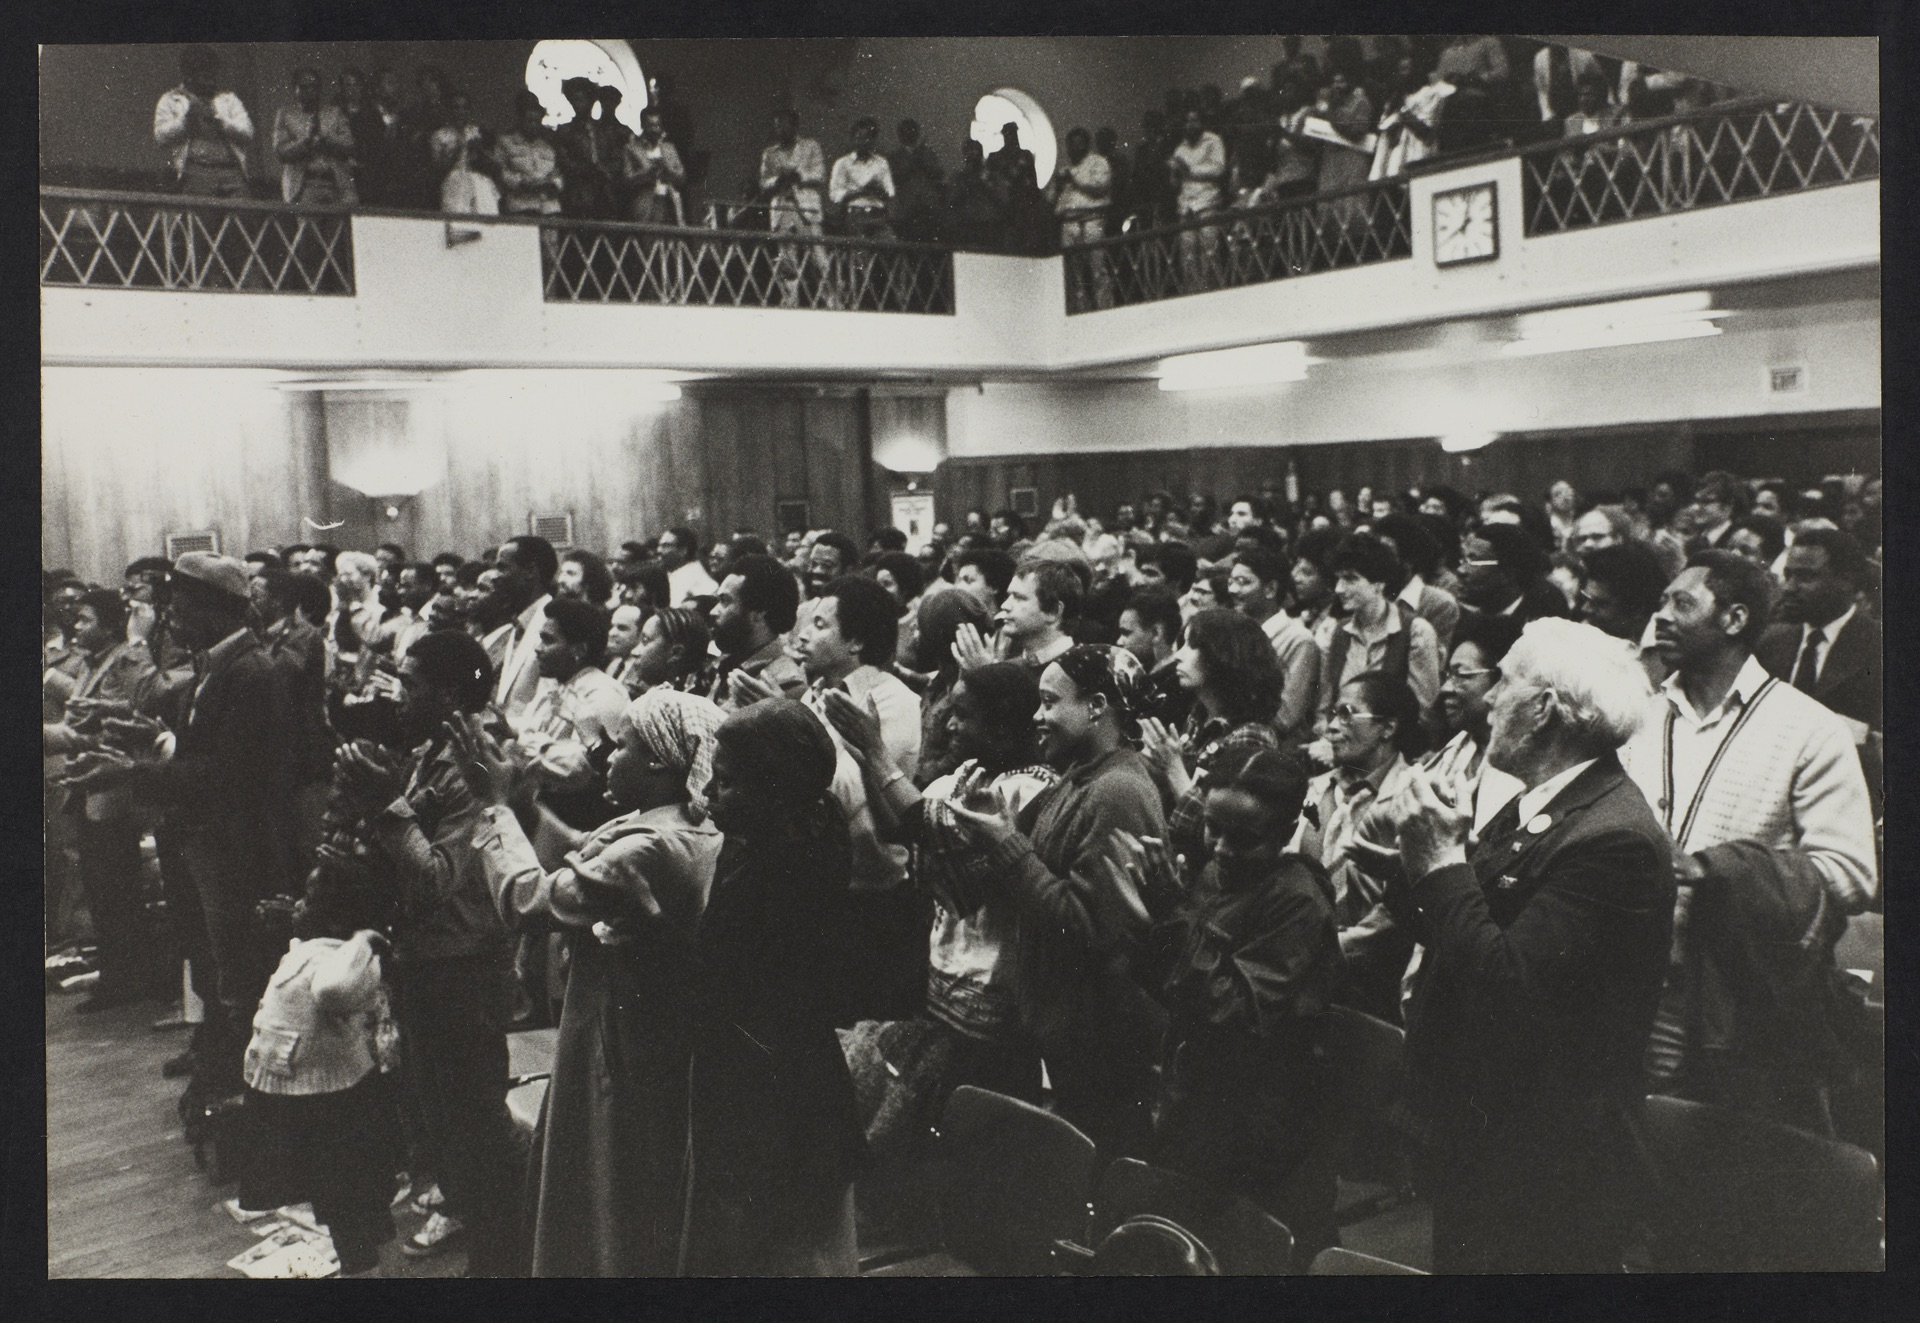 _25 Audience at Walter Rodney Memorial Meeting. 20th July 1980. Huntley Archives at London Metropoli